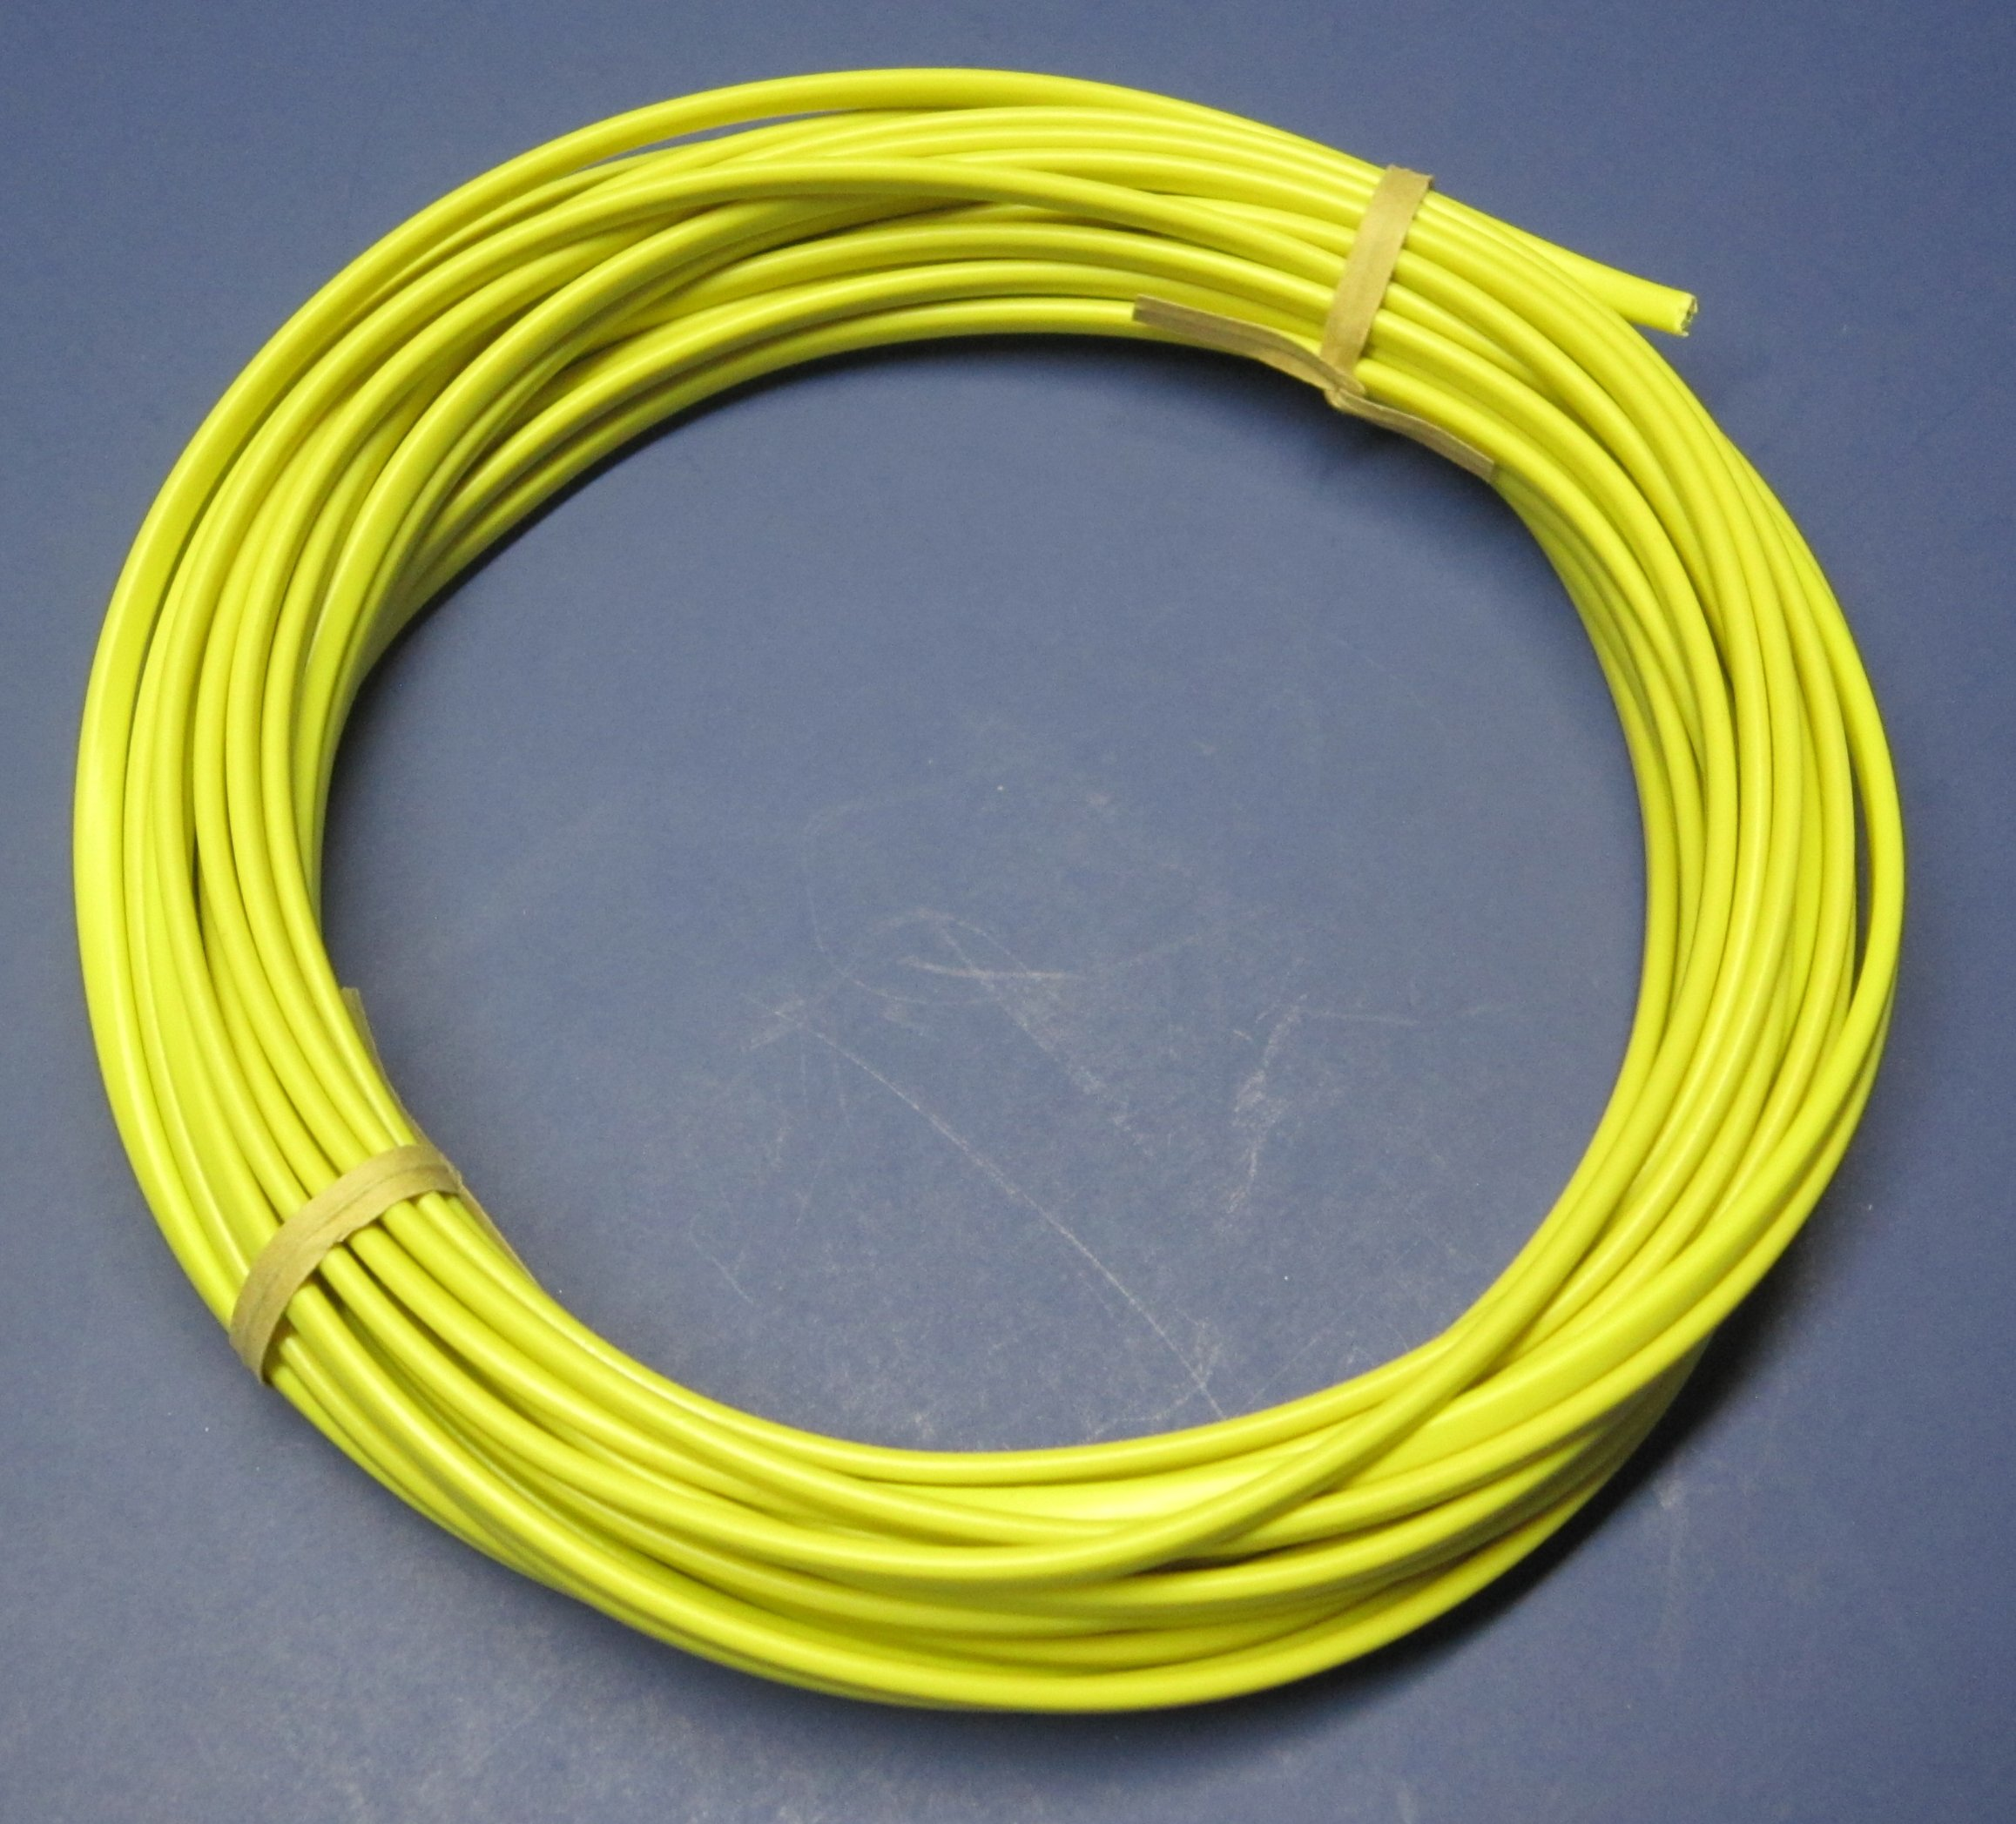 K-type Thermocouple Wire AWG 24 Stranded Wire w. PVC insulation - 10 yard 30 ft roll